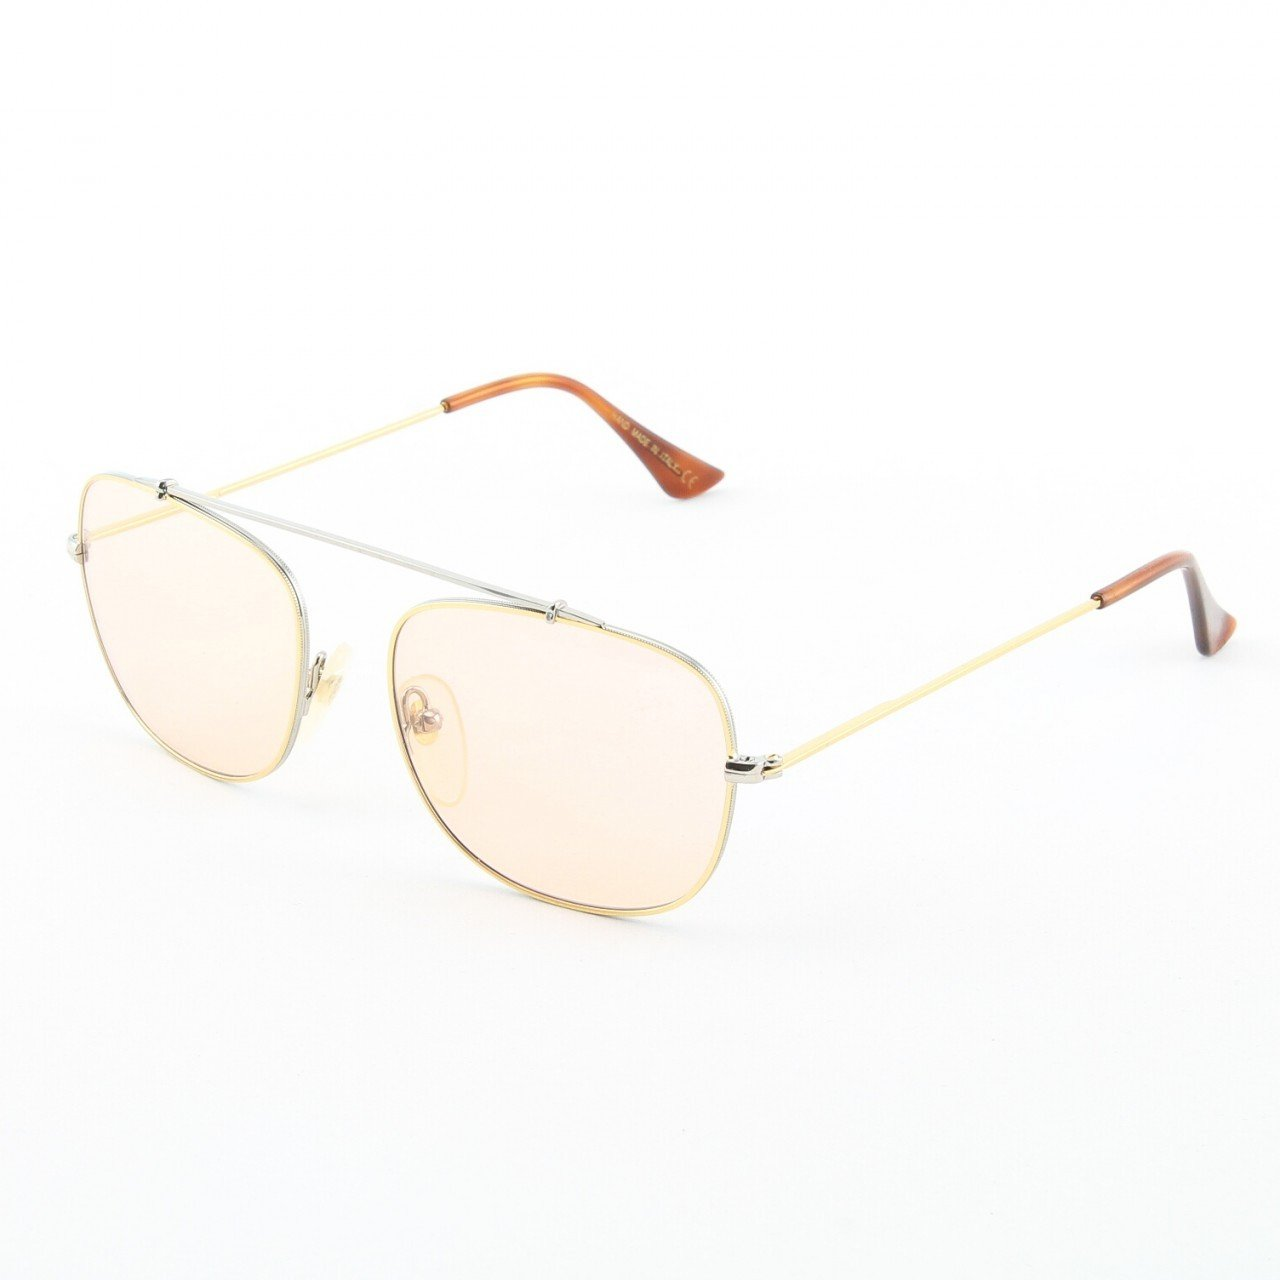 Super Primo 717/1M Sunglasses Gold Chrome with Pink Zeiss Lenses by RETROSUPERFUTURE